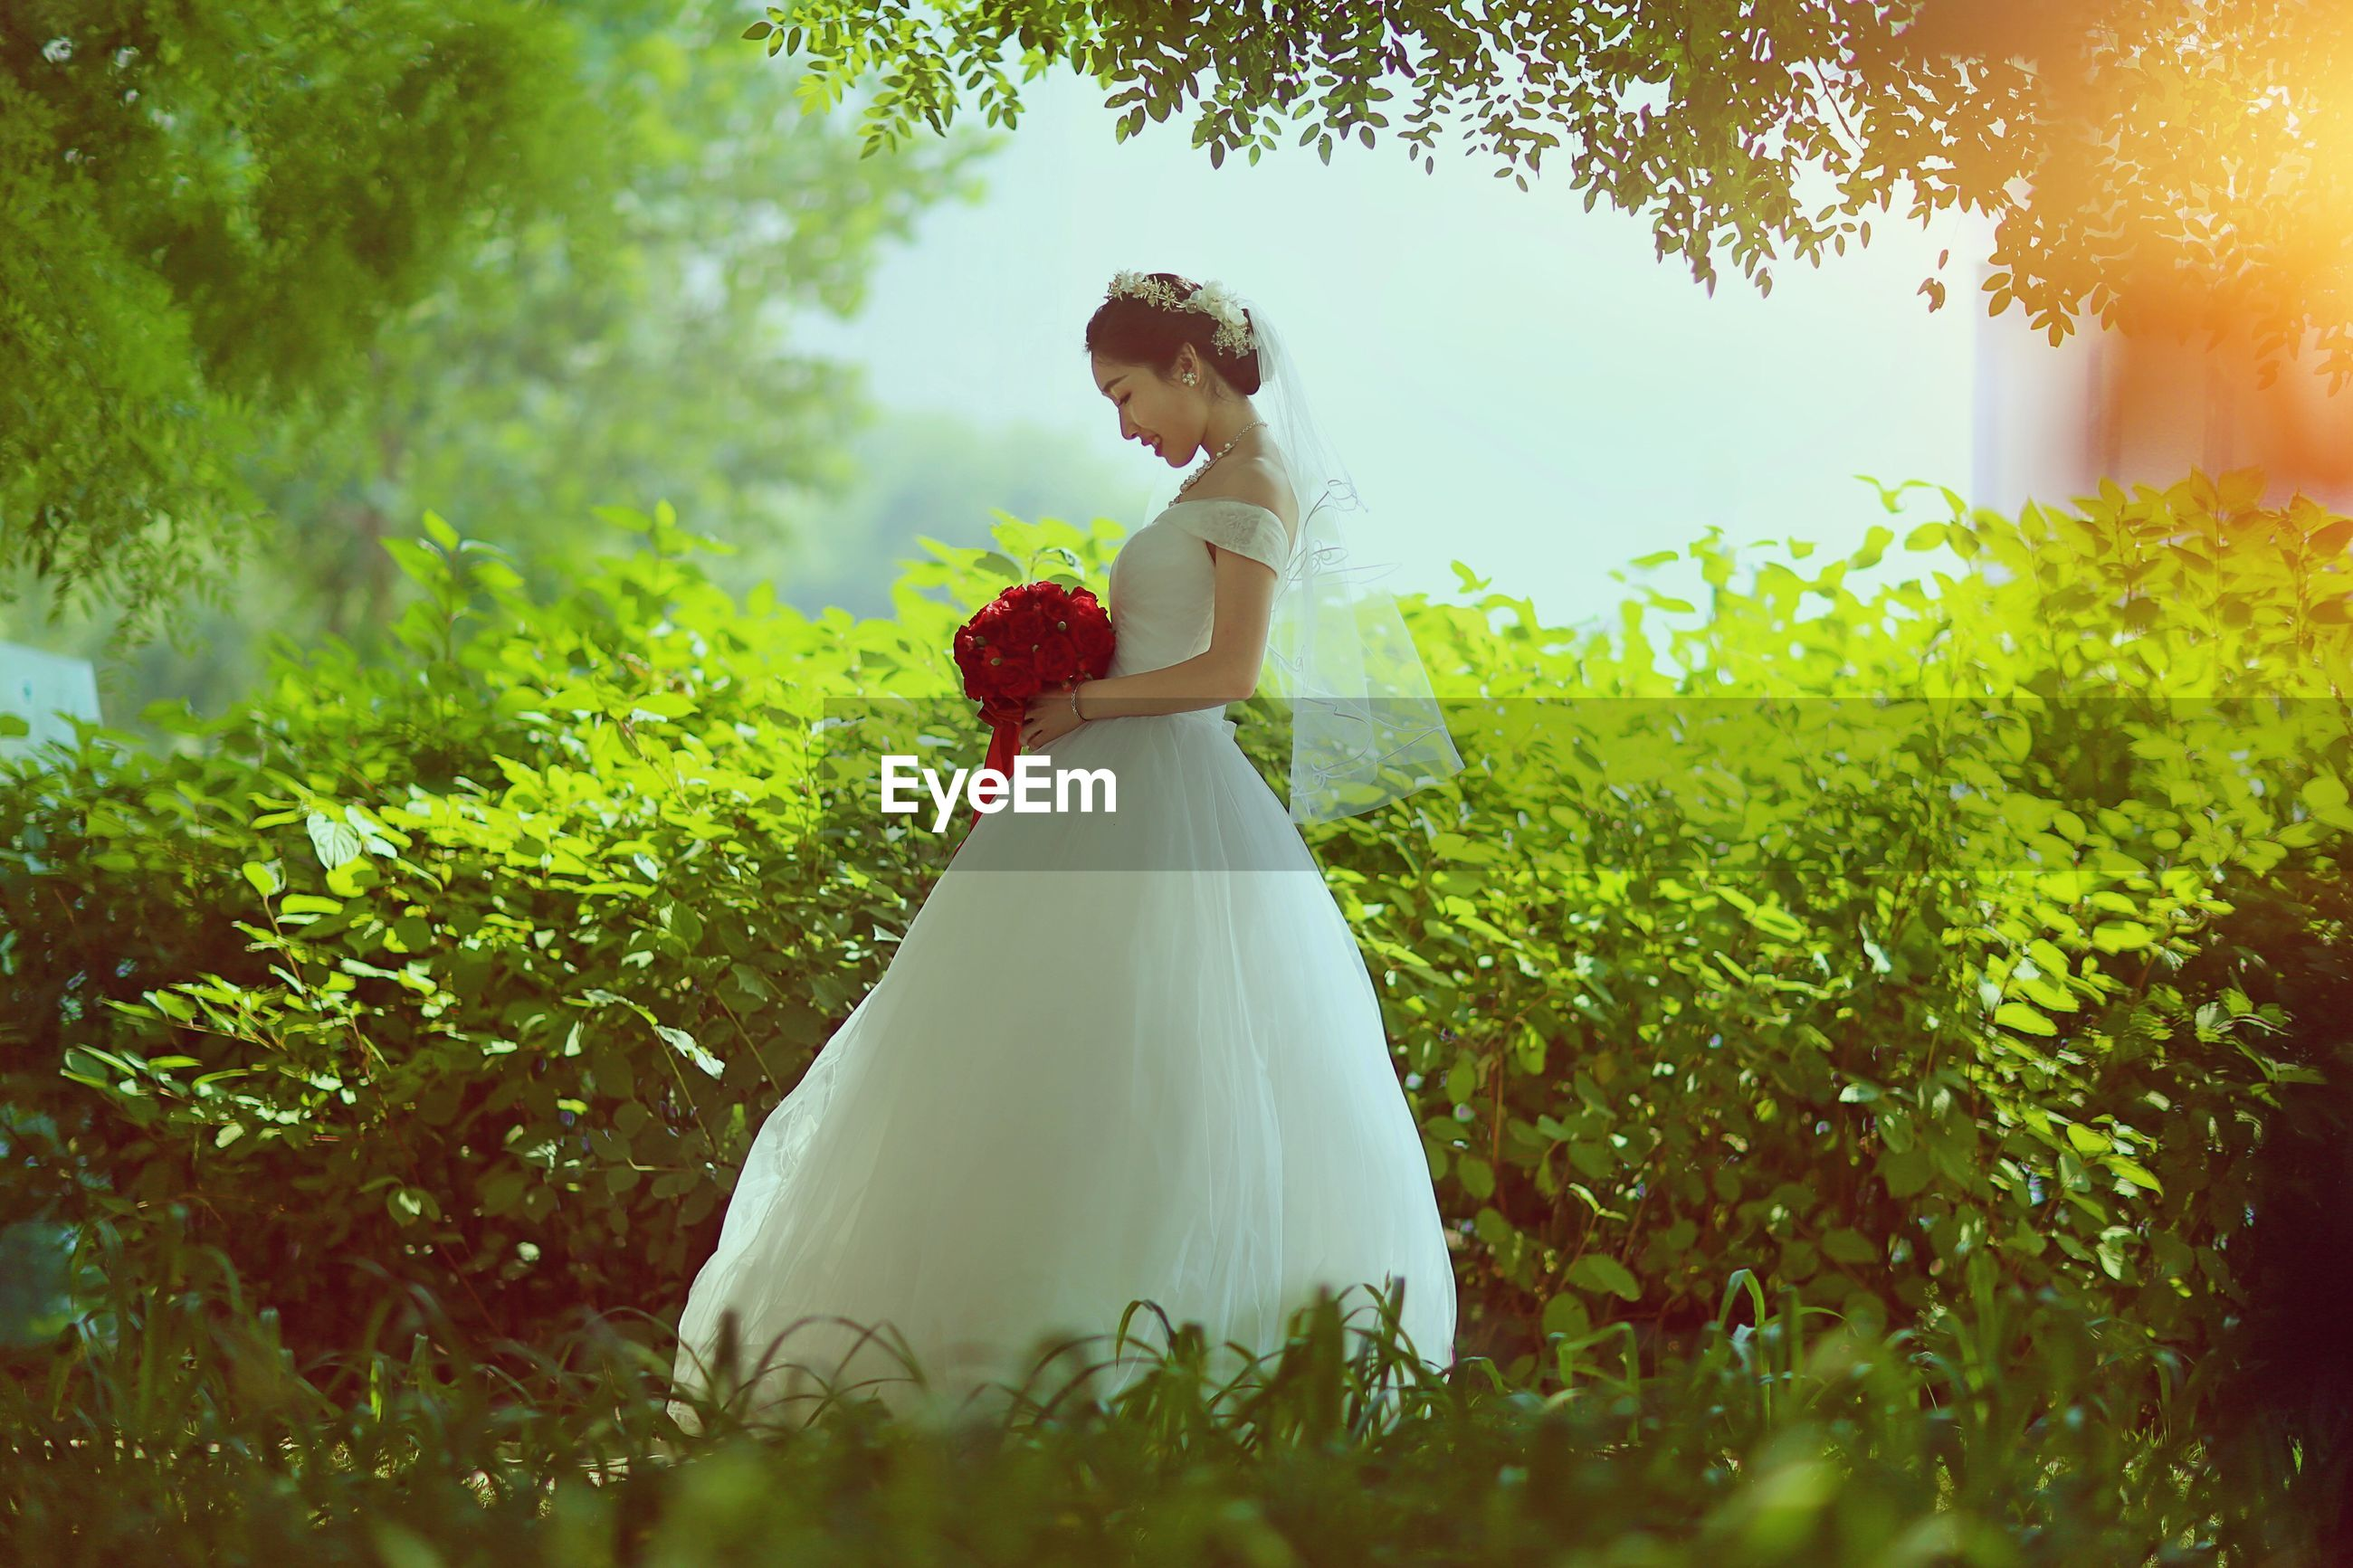 wedding, bride, wedding dress, life events, love, bridegroom, women, young women, celebration, groom, young adult, celebration event, wedding ceremony, standing, married, wife, real people, nature, bouquet, togetherness, outdoors, well-dressed, grass, day, beauty in nature, full length, flower, beautiful woman, tree, people